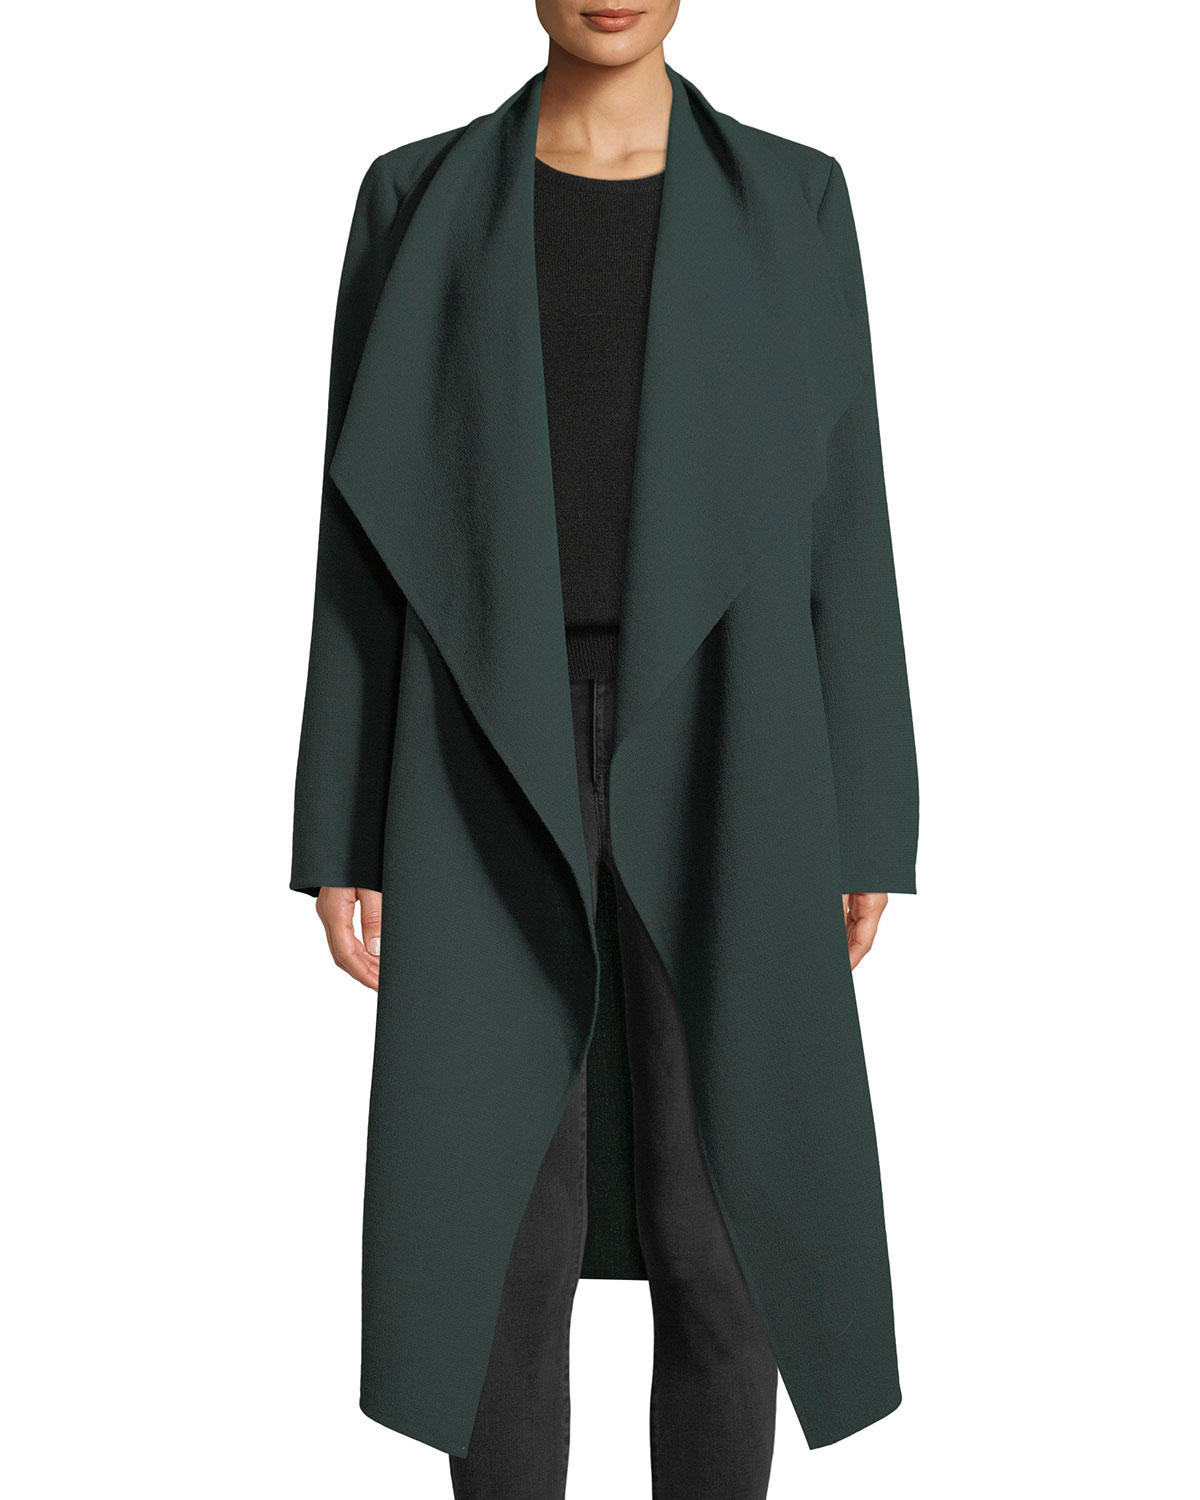 Hemingway Draped Open-Front Wool Crepe Coat